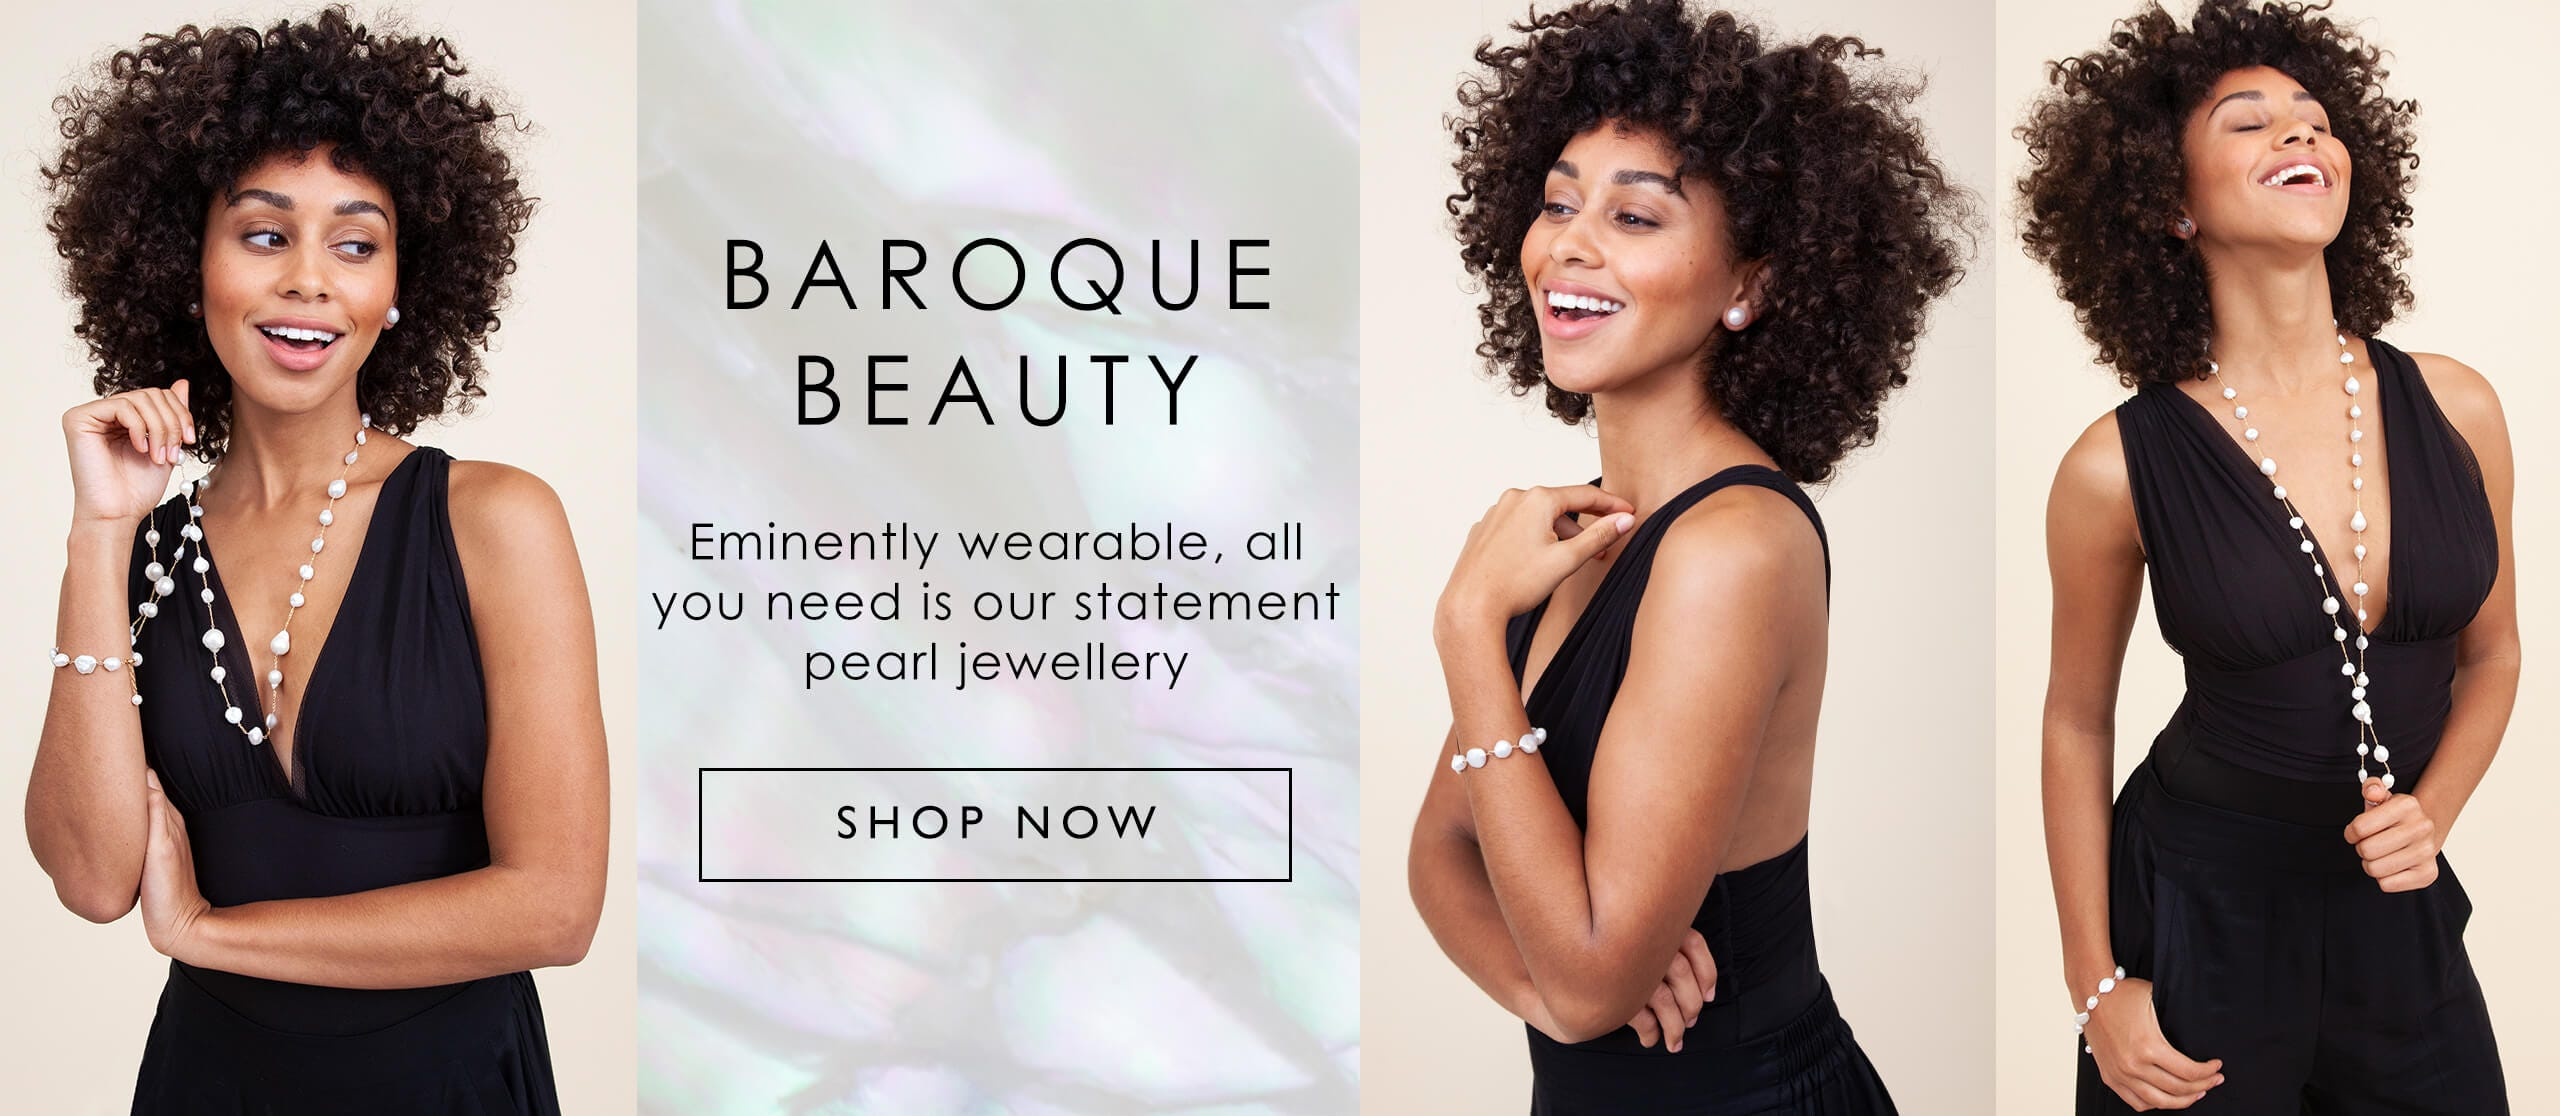 BAROQUE BEAUTY | Eminently wearable, all you need is our statement pearl jewellery